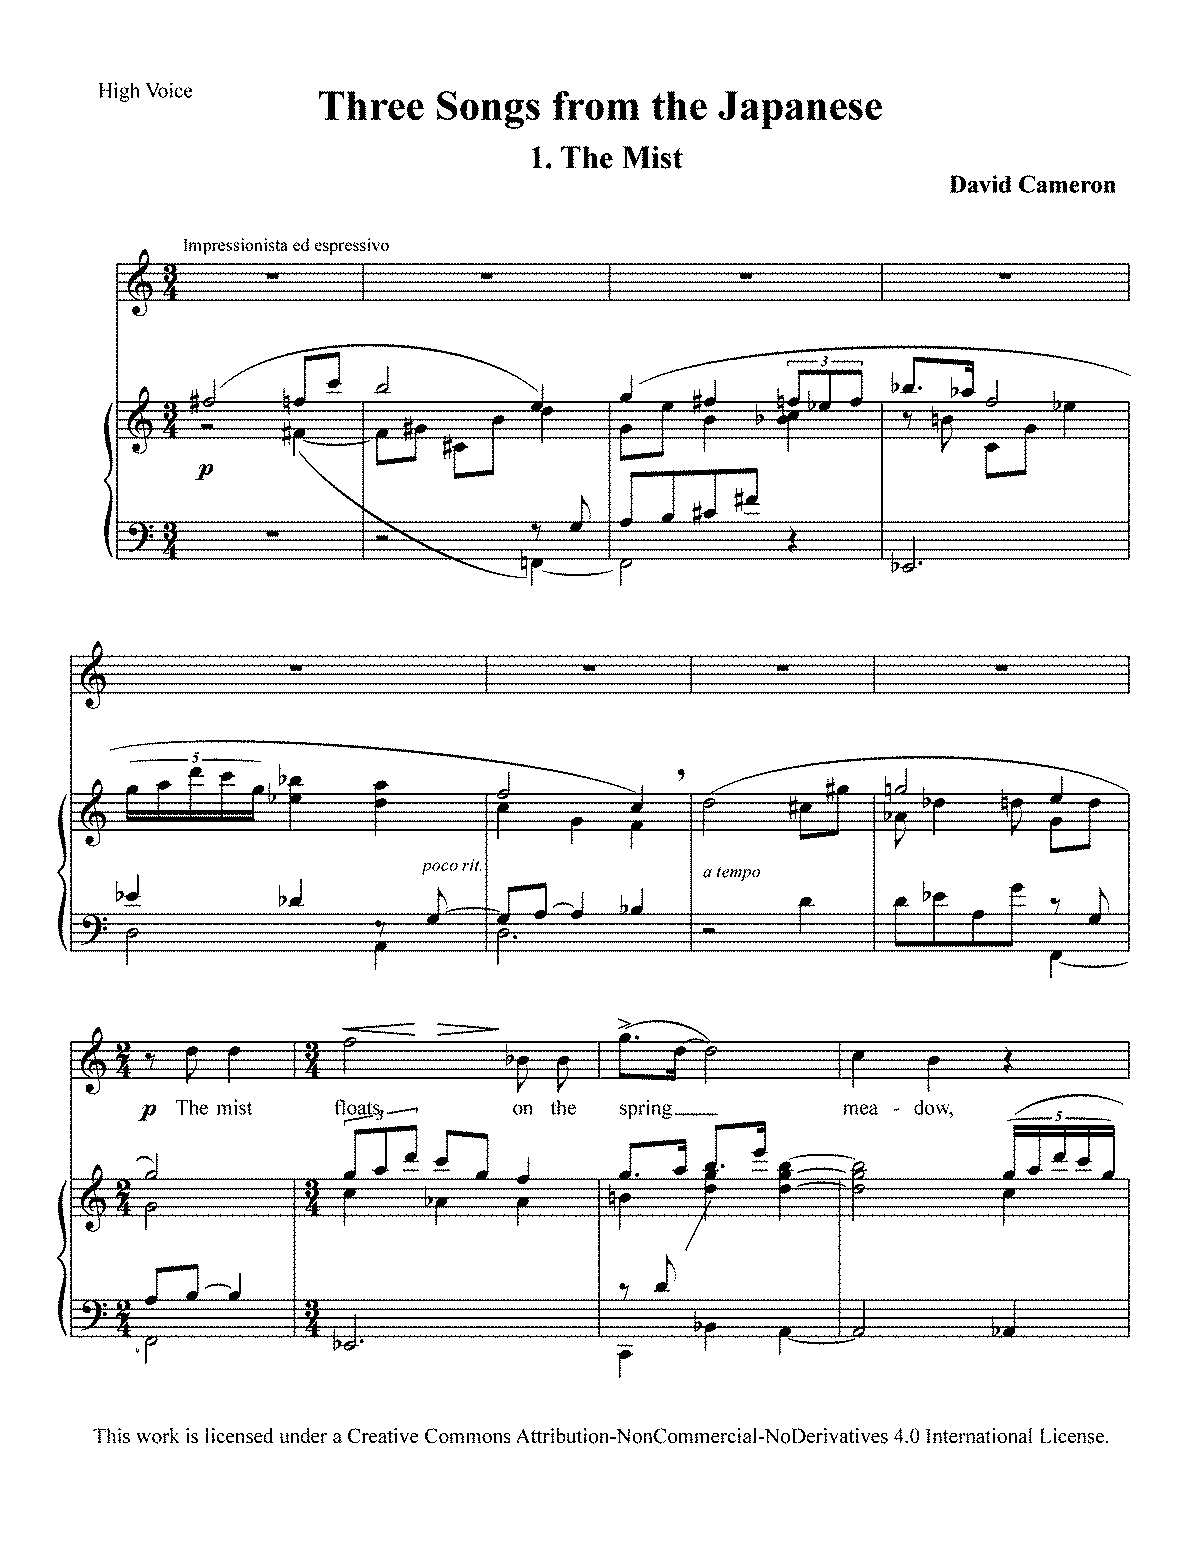 PMLP608249-Three Songs from the Japanese, high voice.pdf